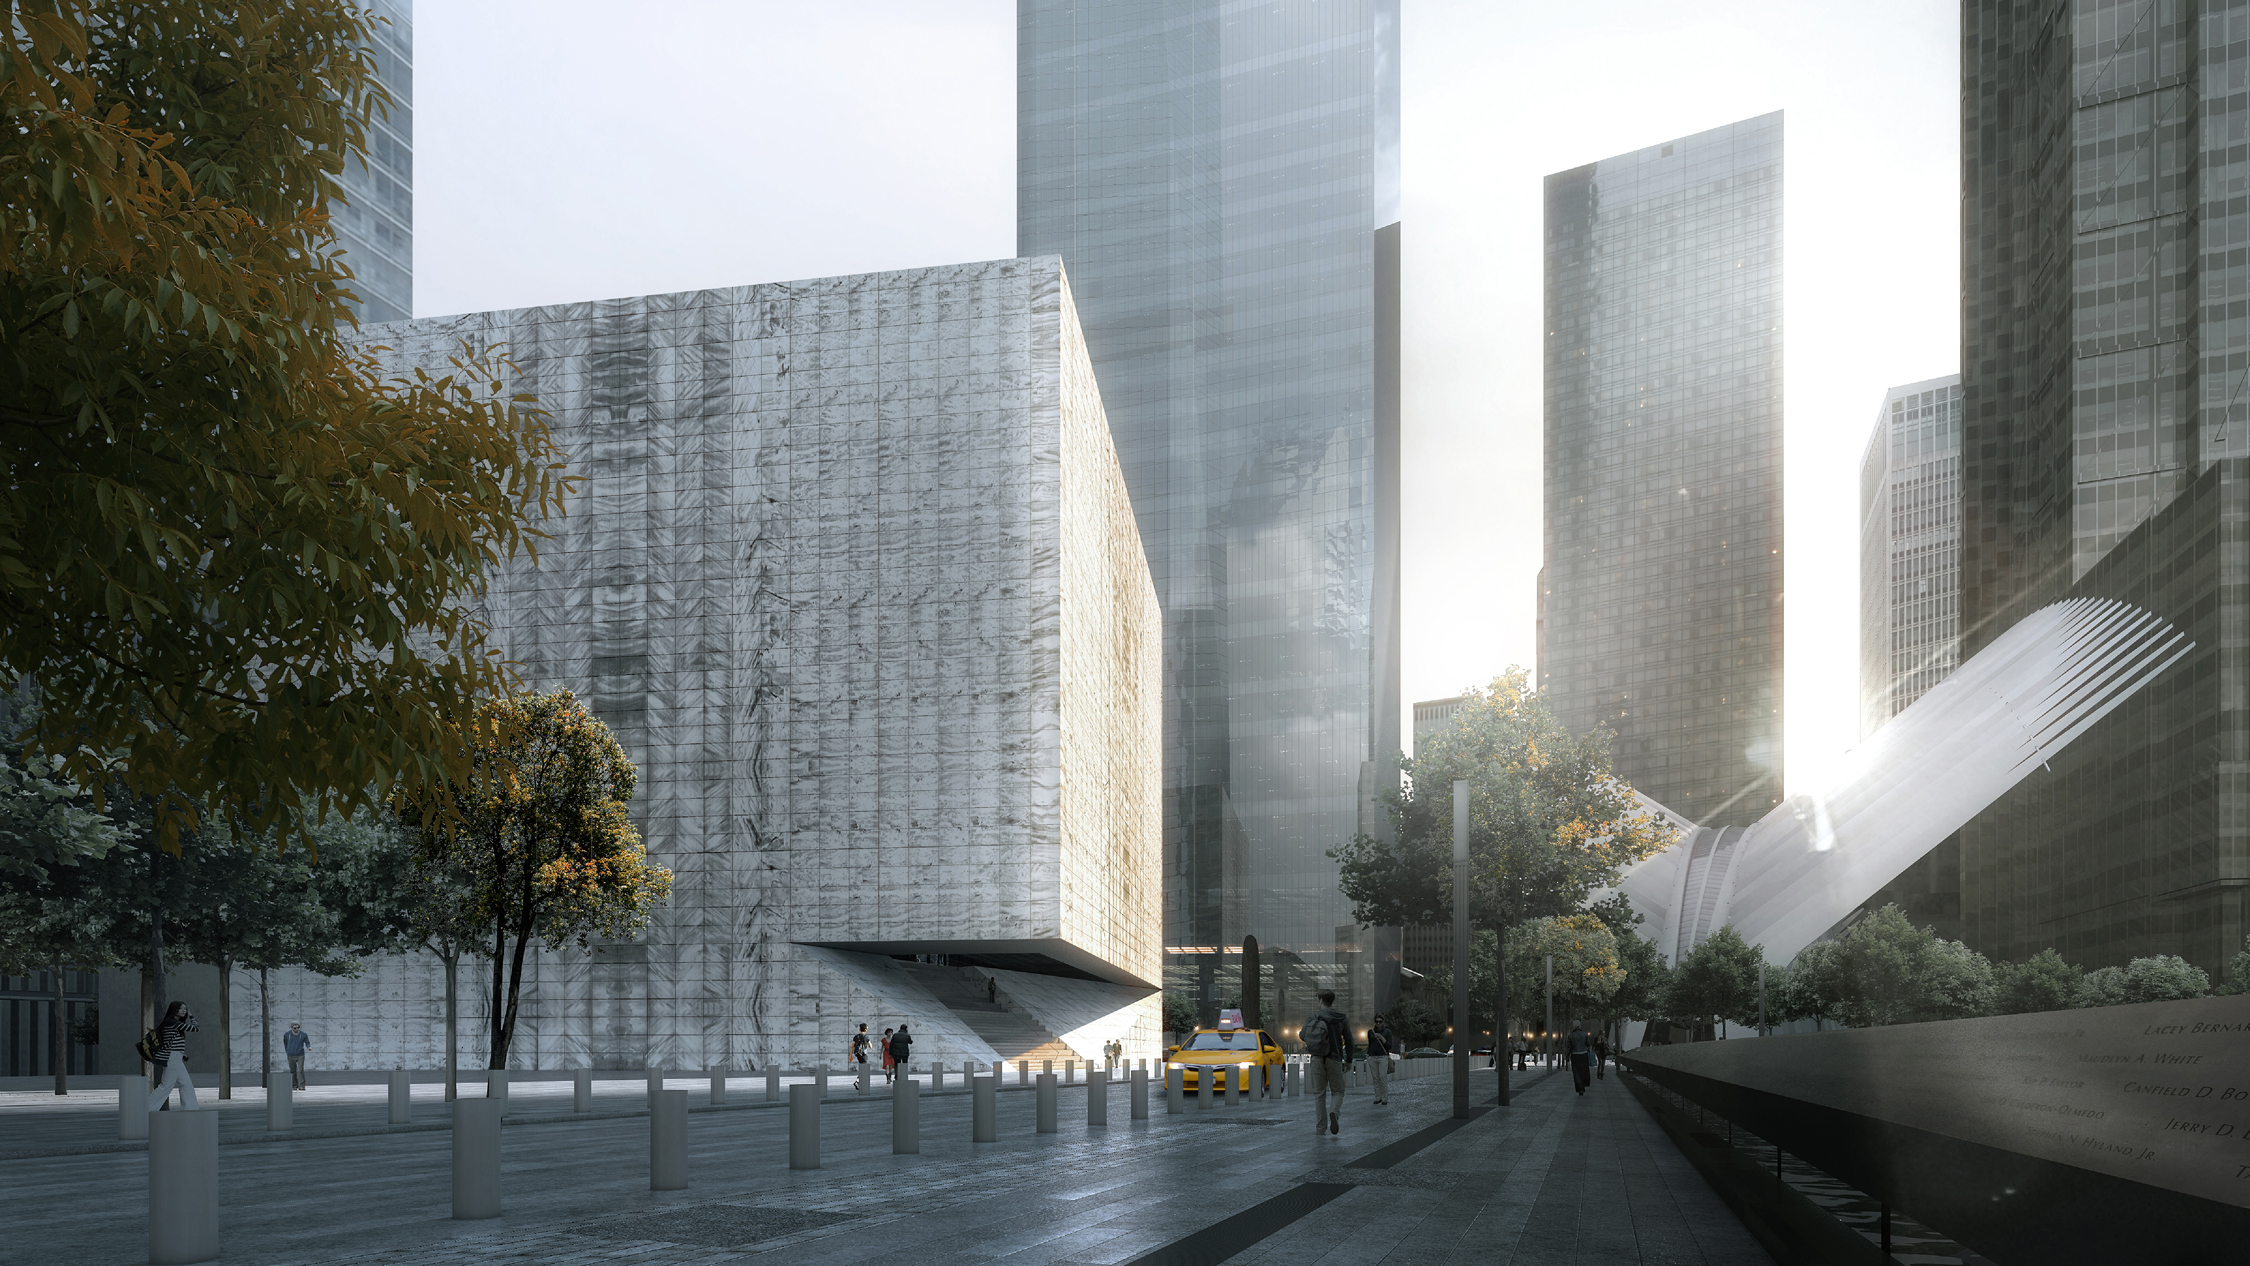 Dawn rendering, from the west, of the Ronald O. Perelman Performing Arts Center at the World Trade Center. Rendering by LUXIGON